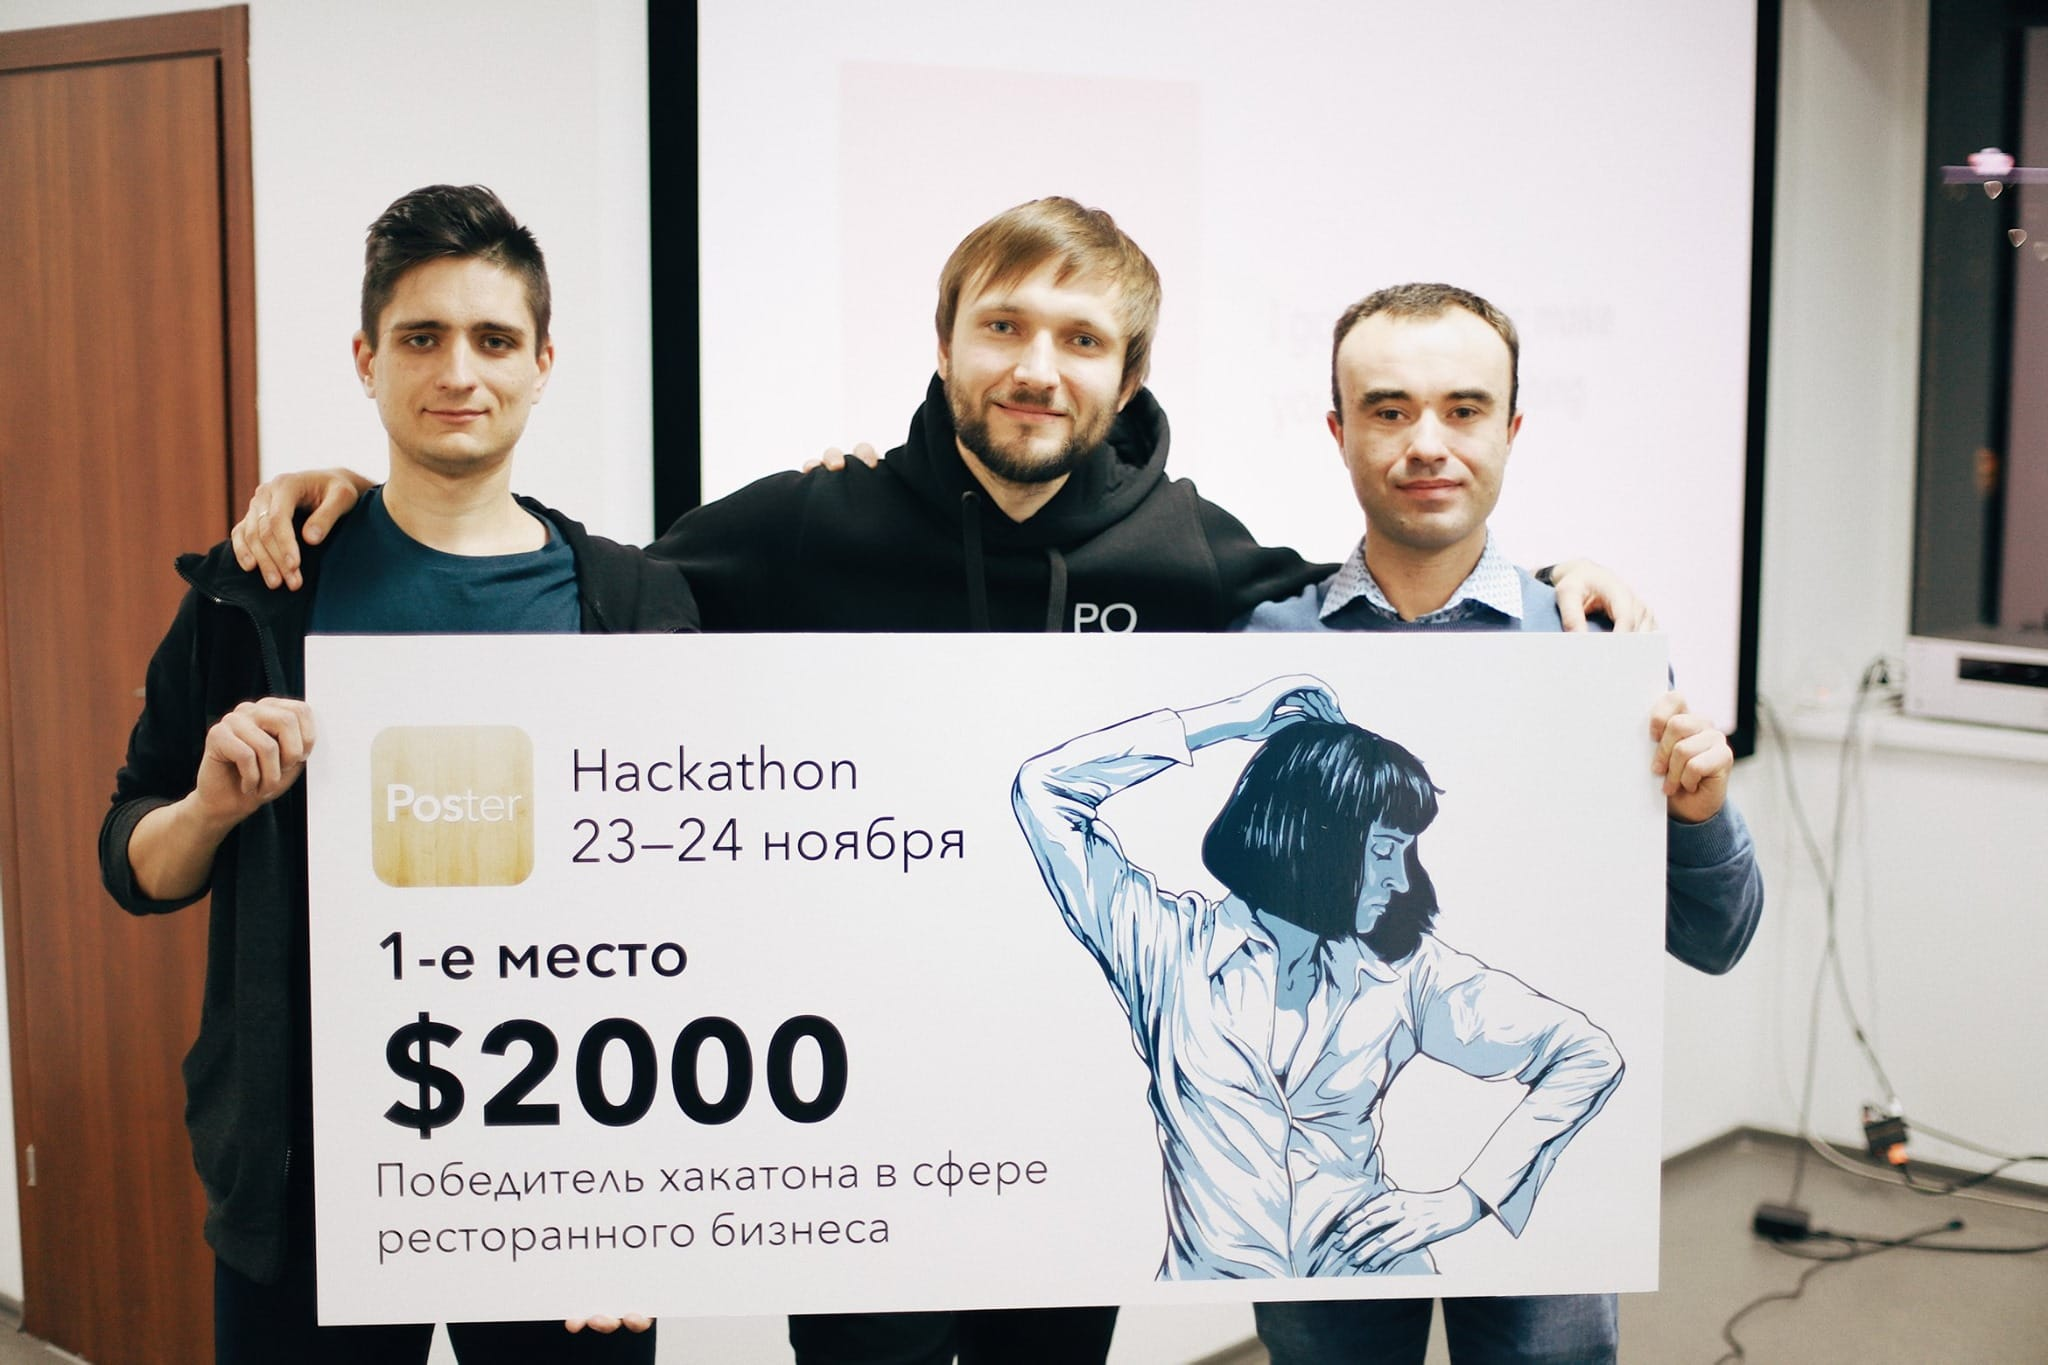 Hackathon first place